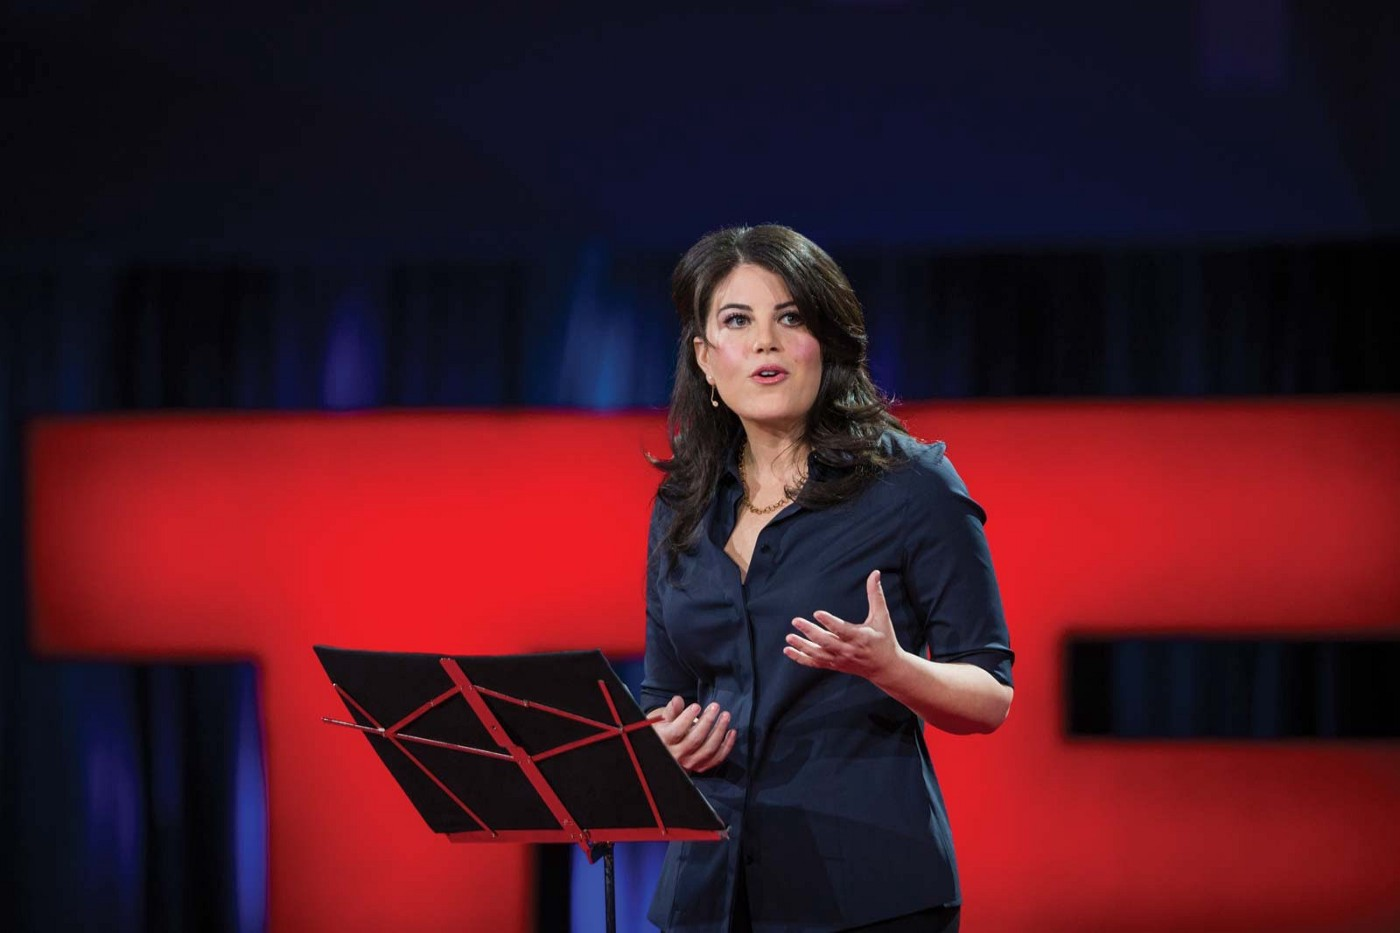 Monica Lewinsky on the TED Stage speaking